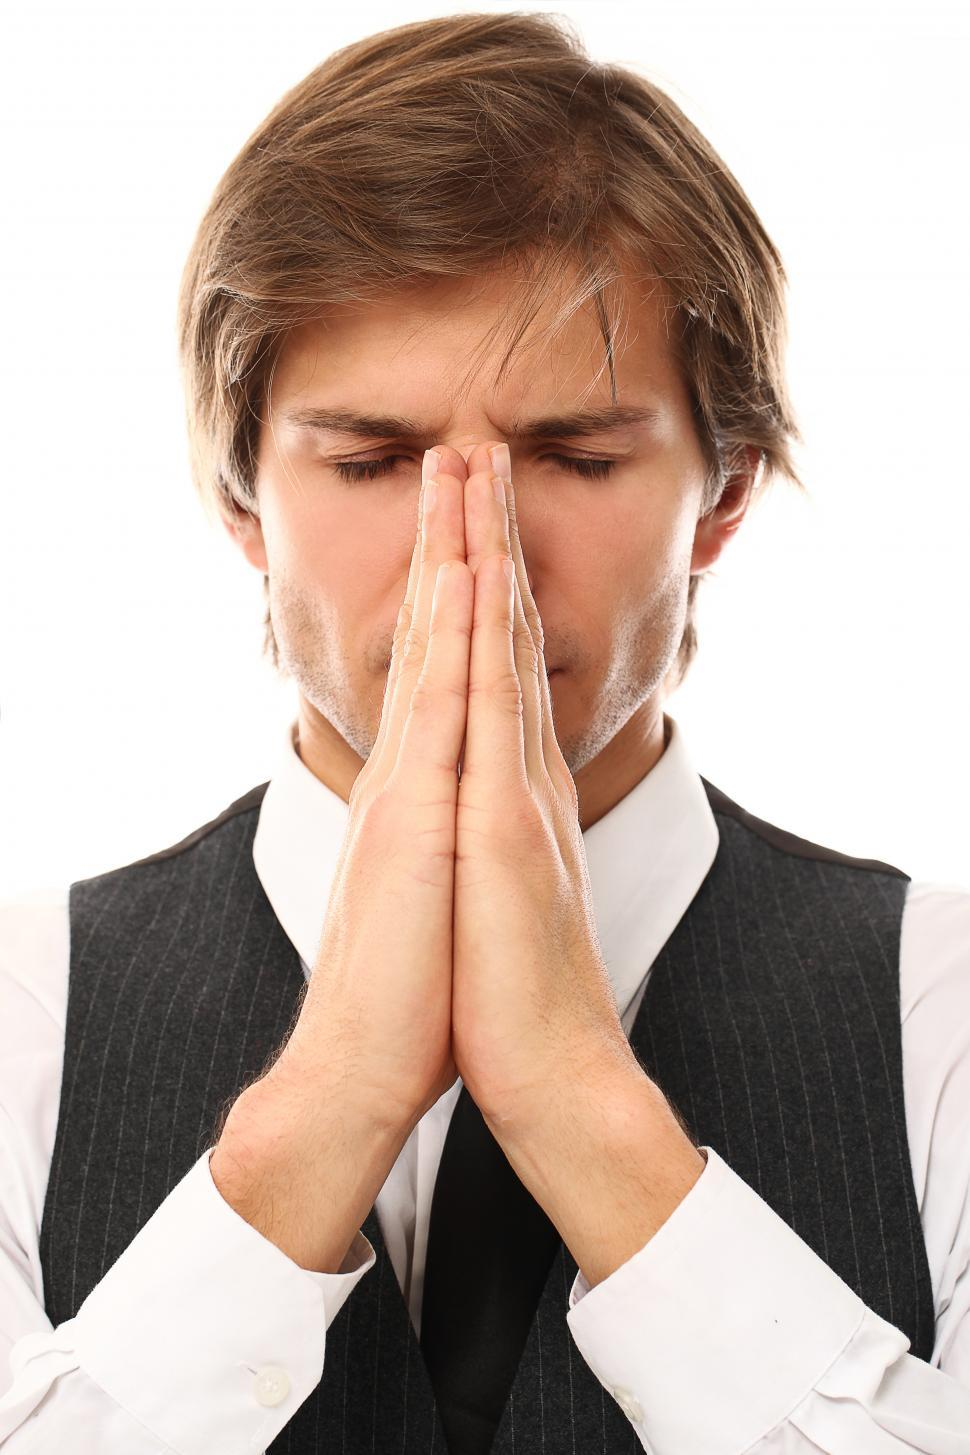 Download Free Stock Photo of Man with hands together as if in prayer